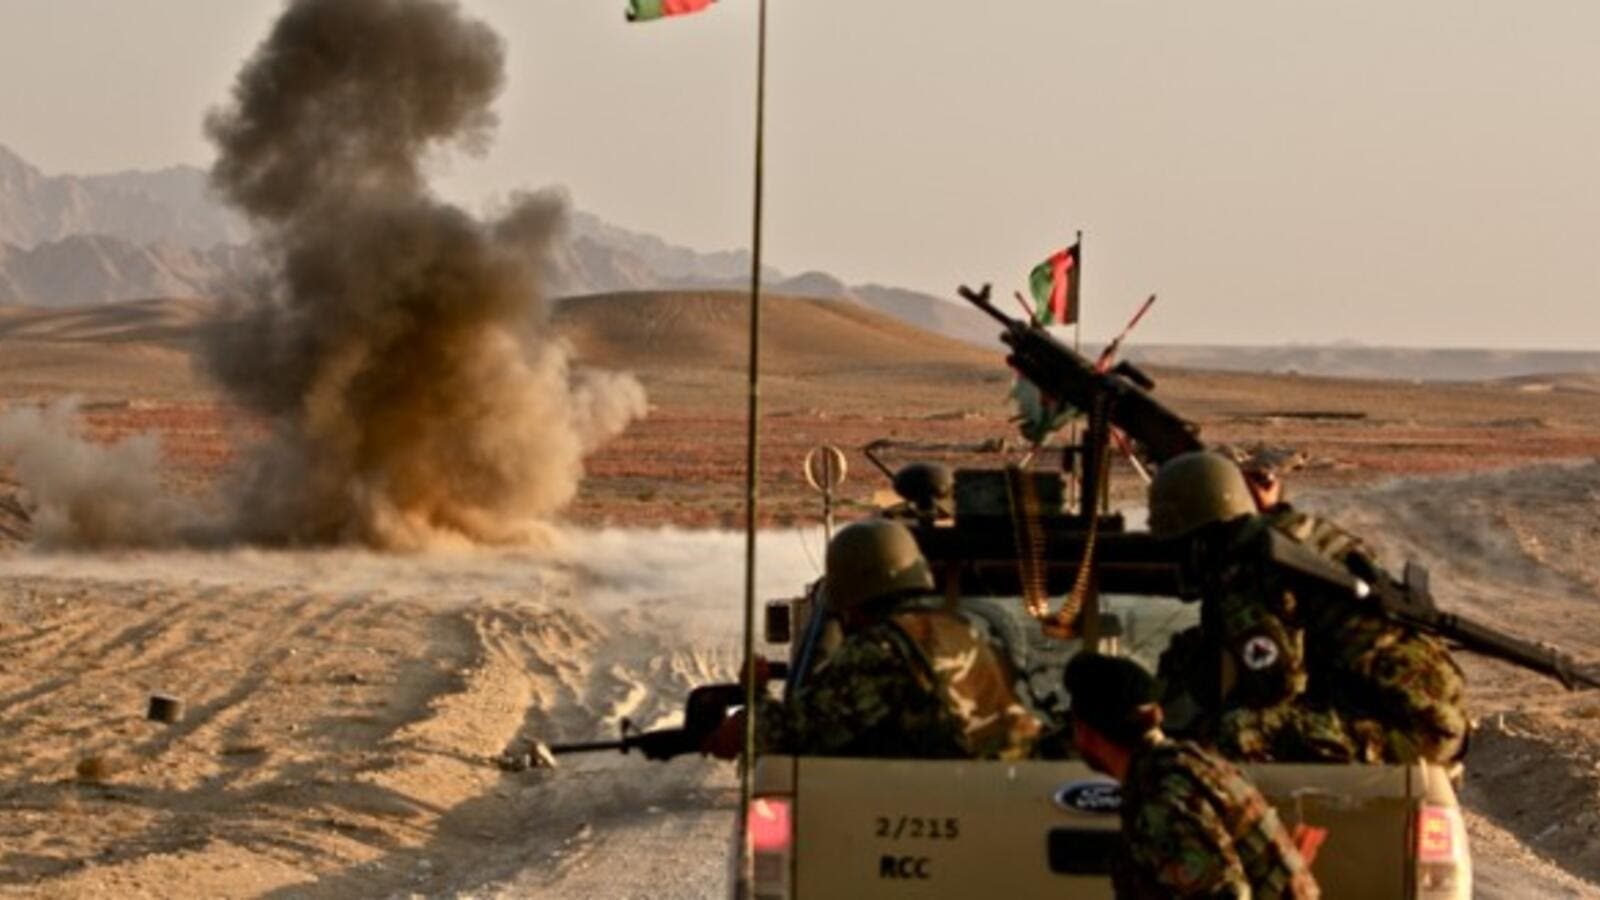 Afghan army soldiers are seen during an operation in Afghanistan. (AFP/File)